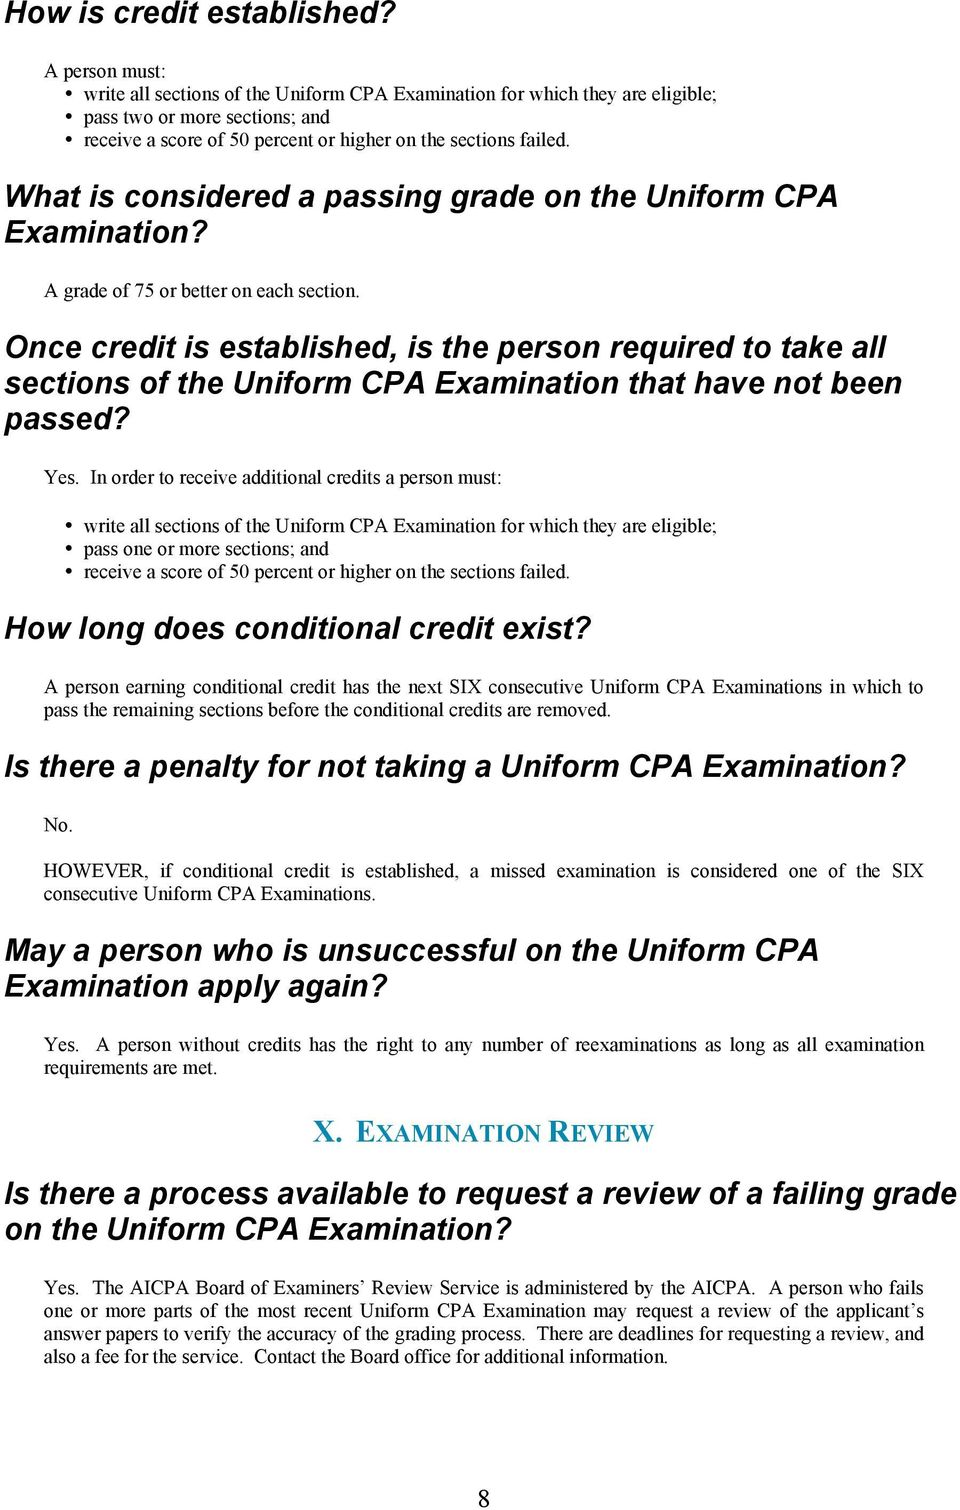 What is considered a passing grade on the Uniform CPA Examination? A grade of 75 or better on each section.